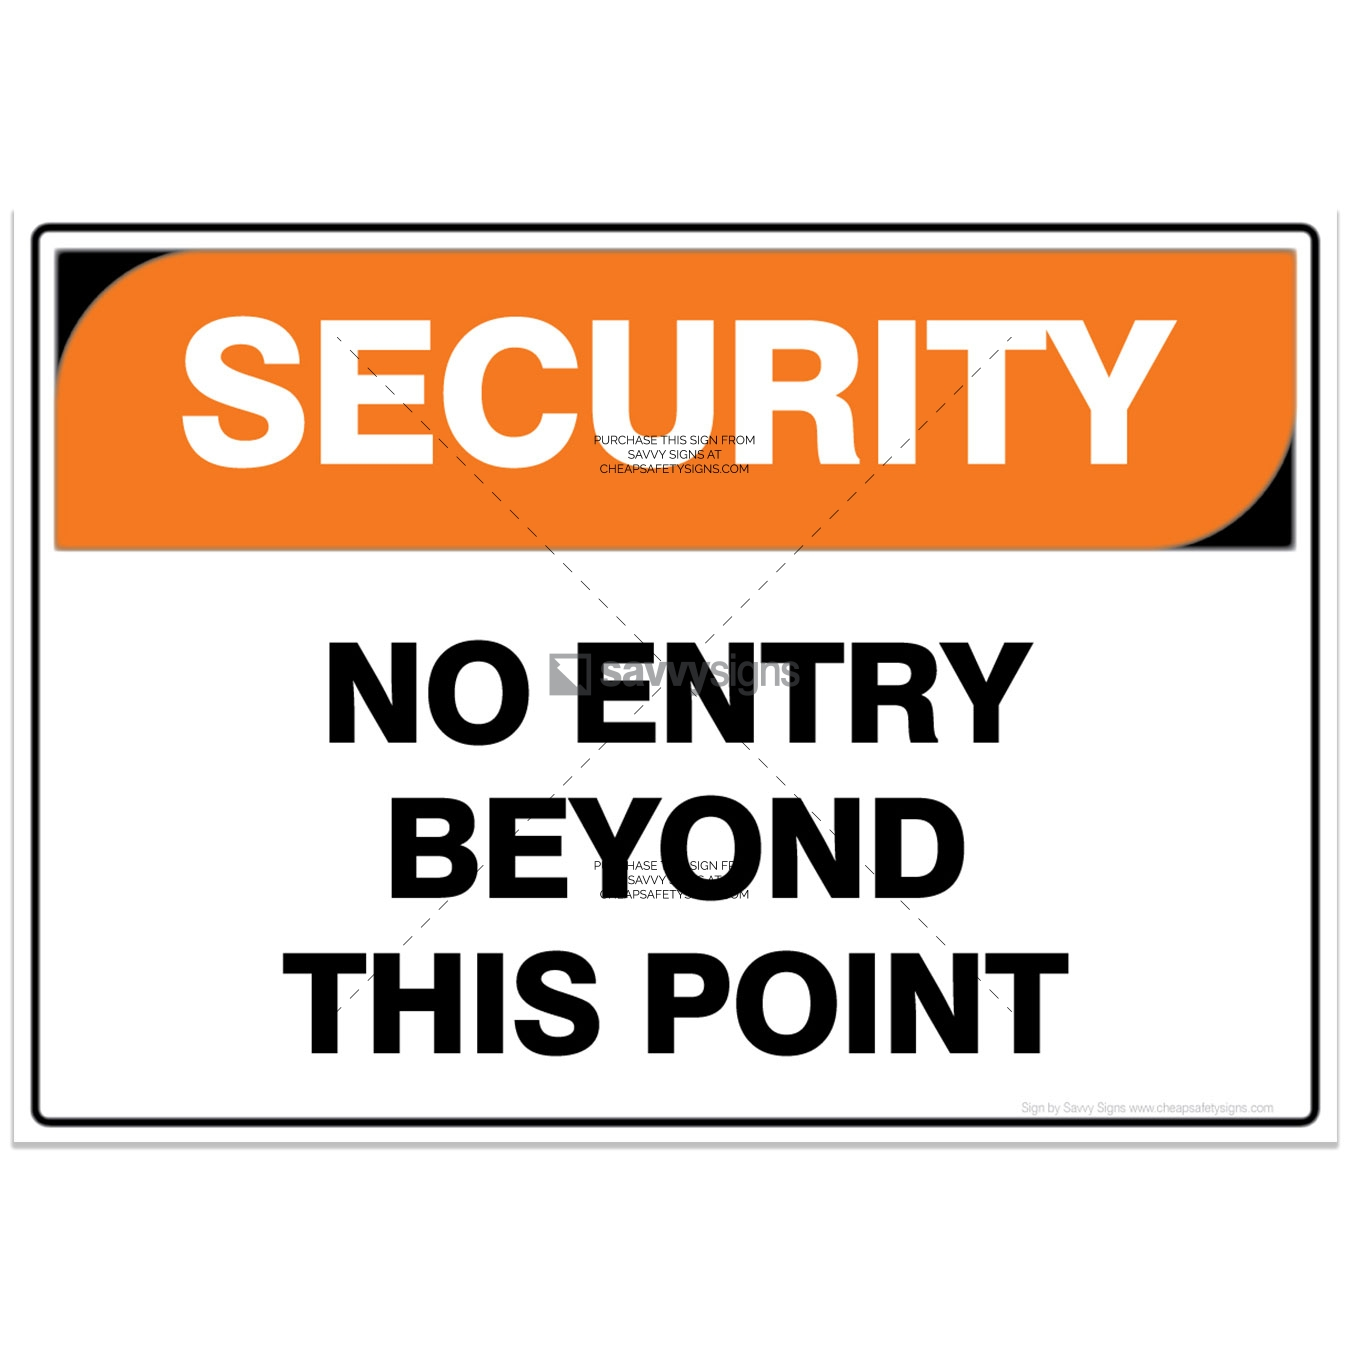 SSSEC3013-SECURITY-Workplace-Safety-Signs_Savvy-Signs_v3